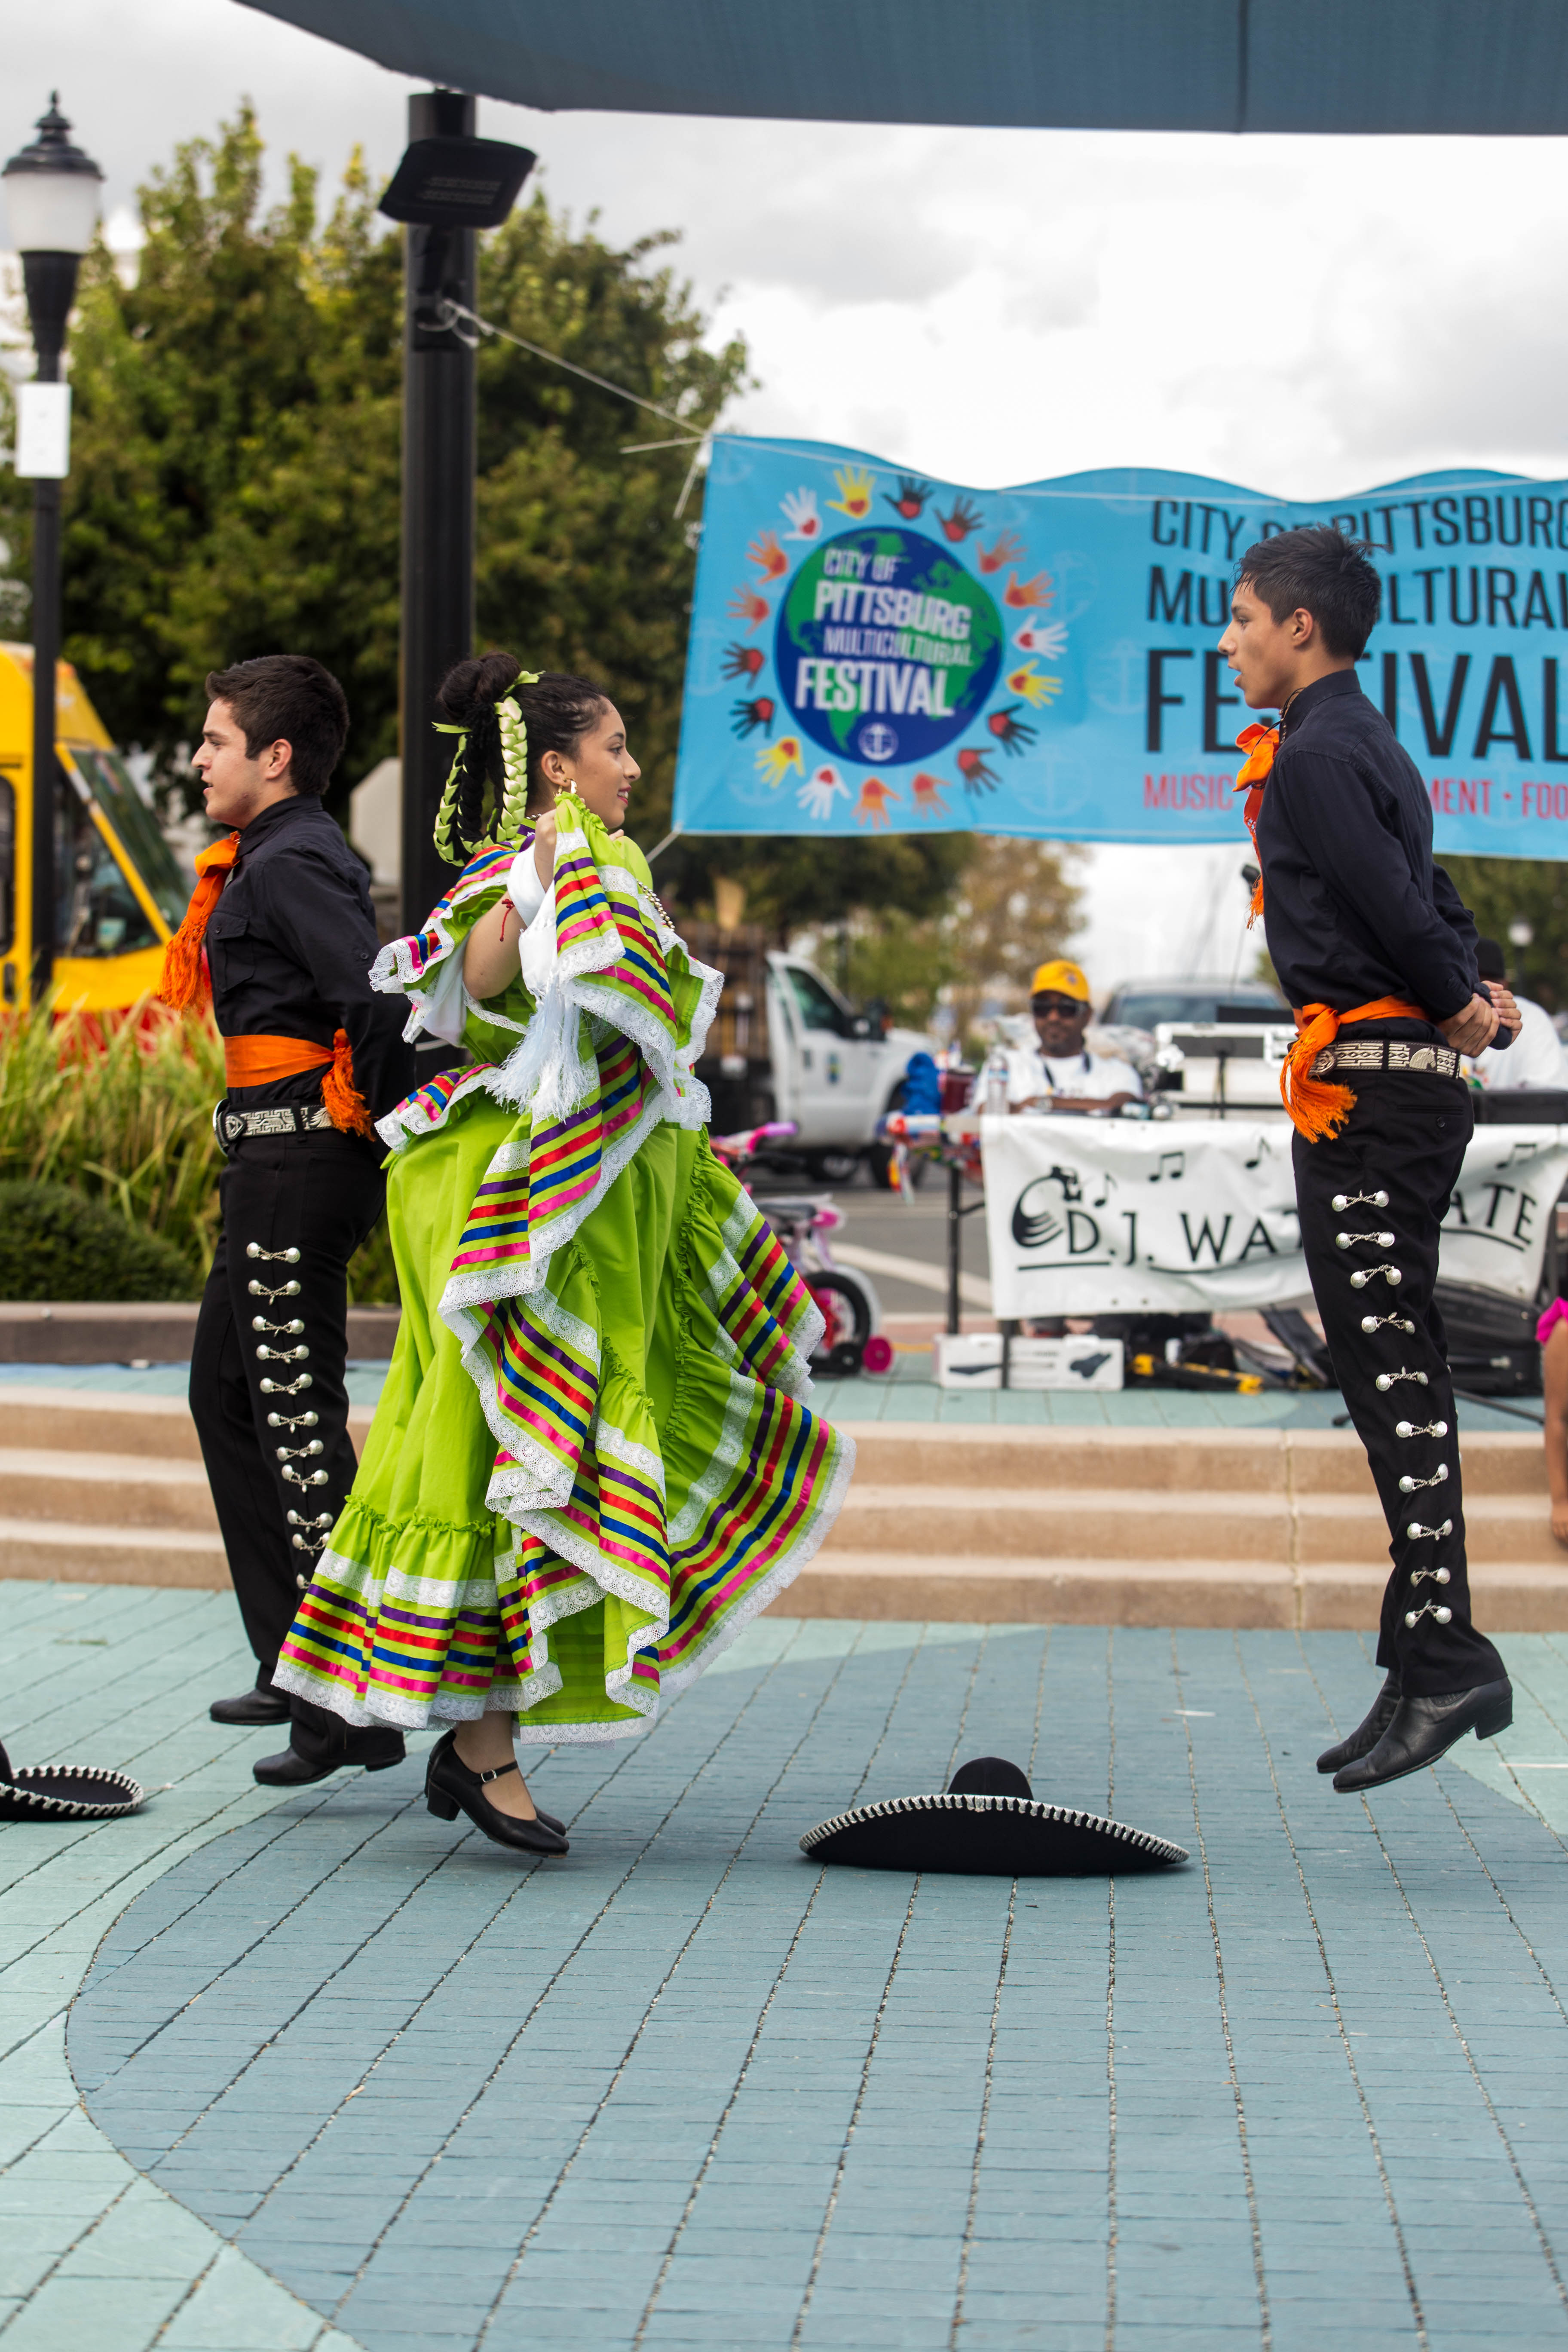 CITY_PITTSBURG_MULTICULTURAL_OCTOBER_2016 (641)